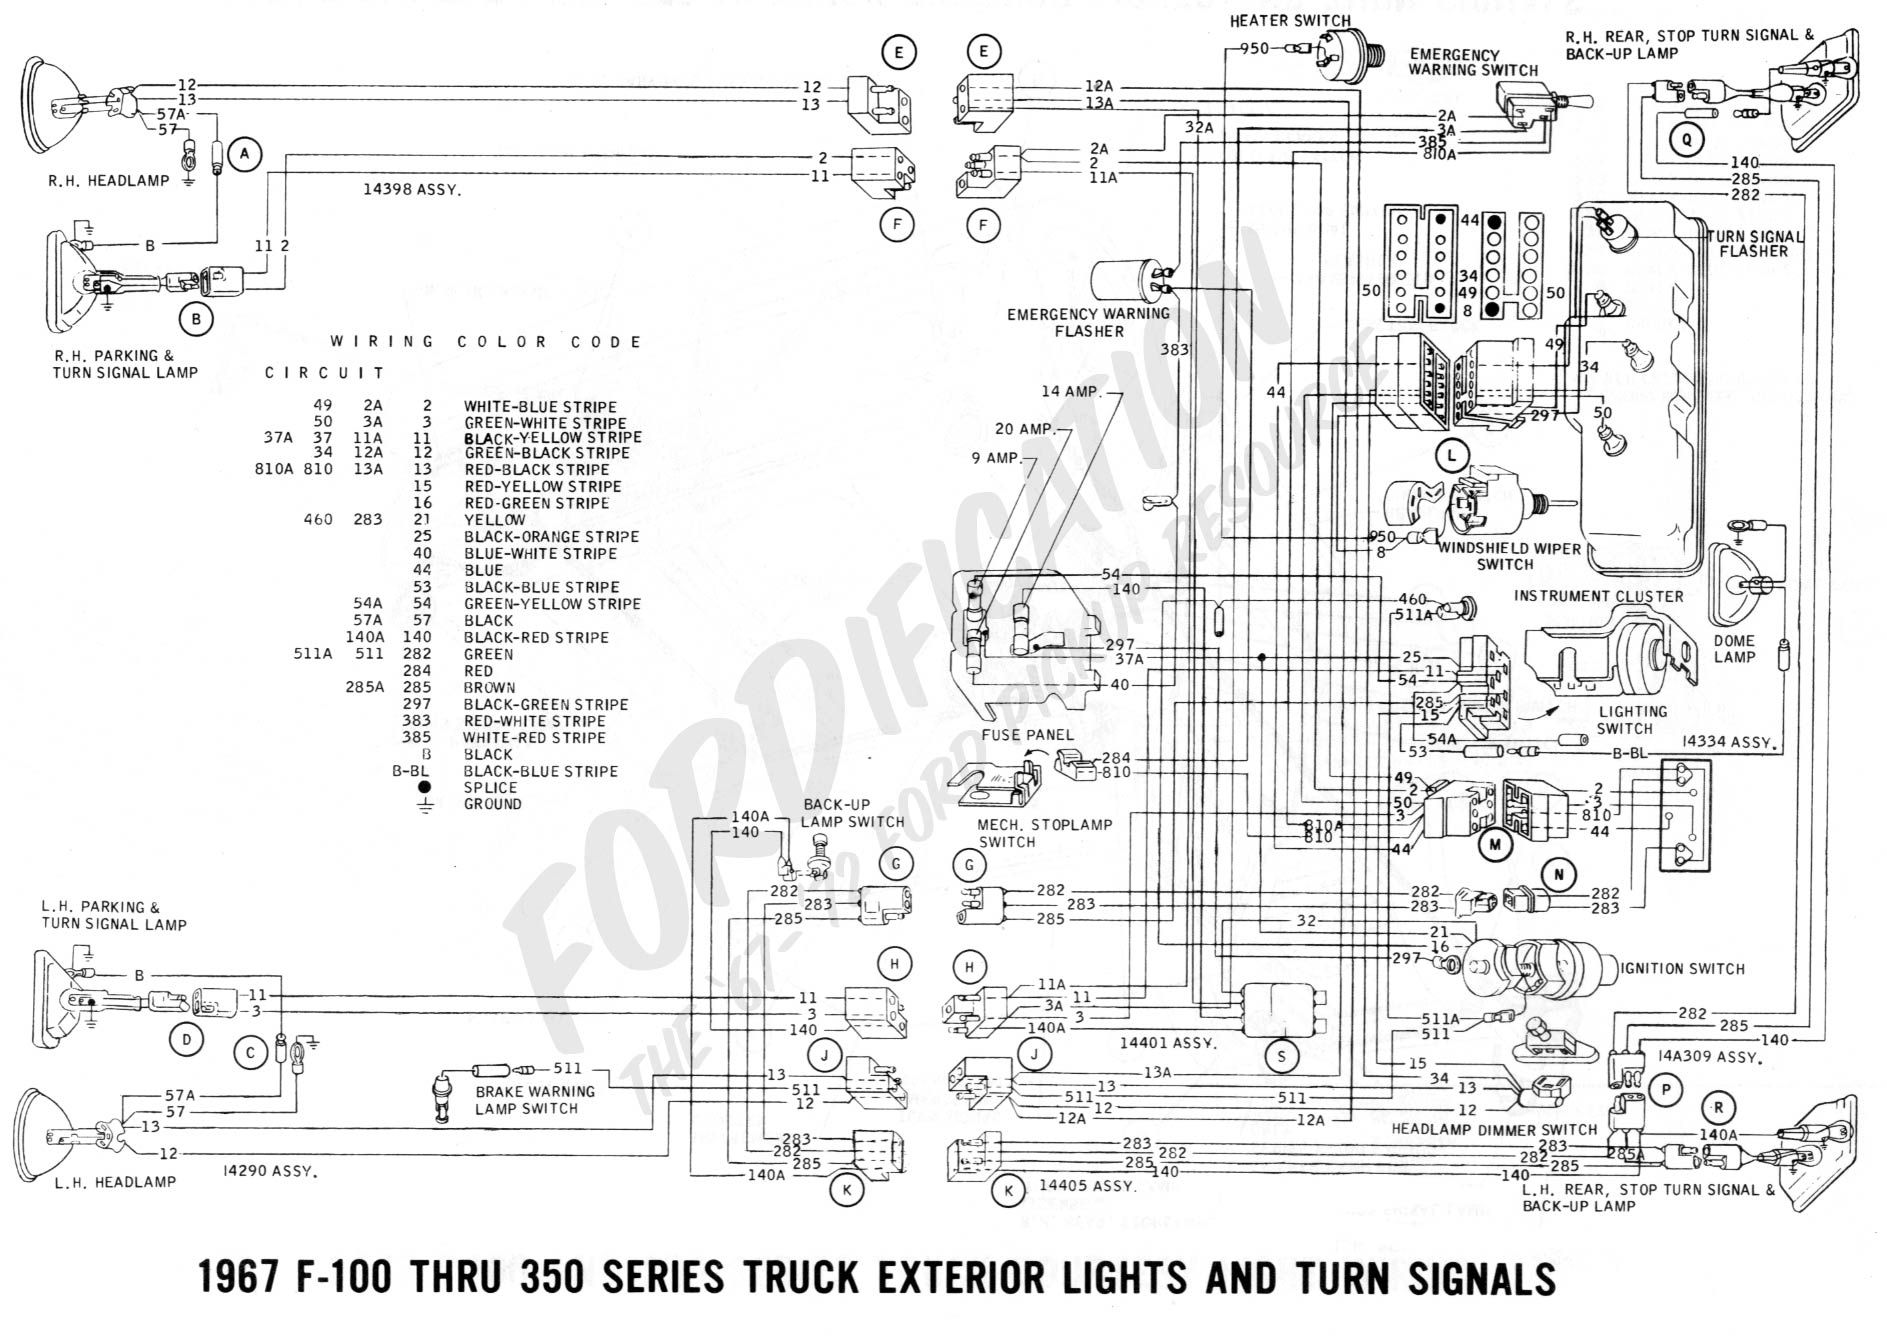 wiring diagram the wiring diagram 2011 ford f750 wiring diagram 2011 printable wiring wiring diagram